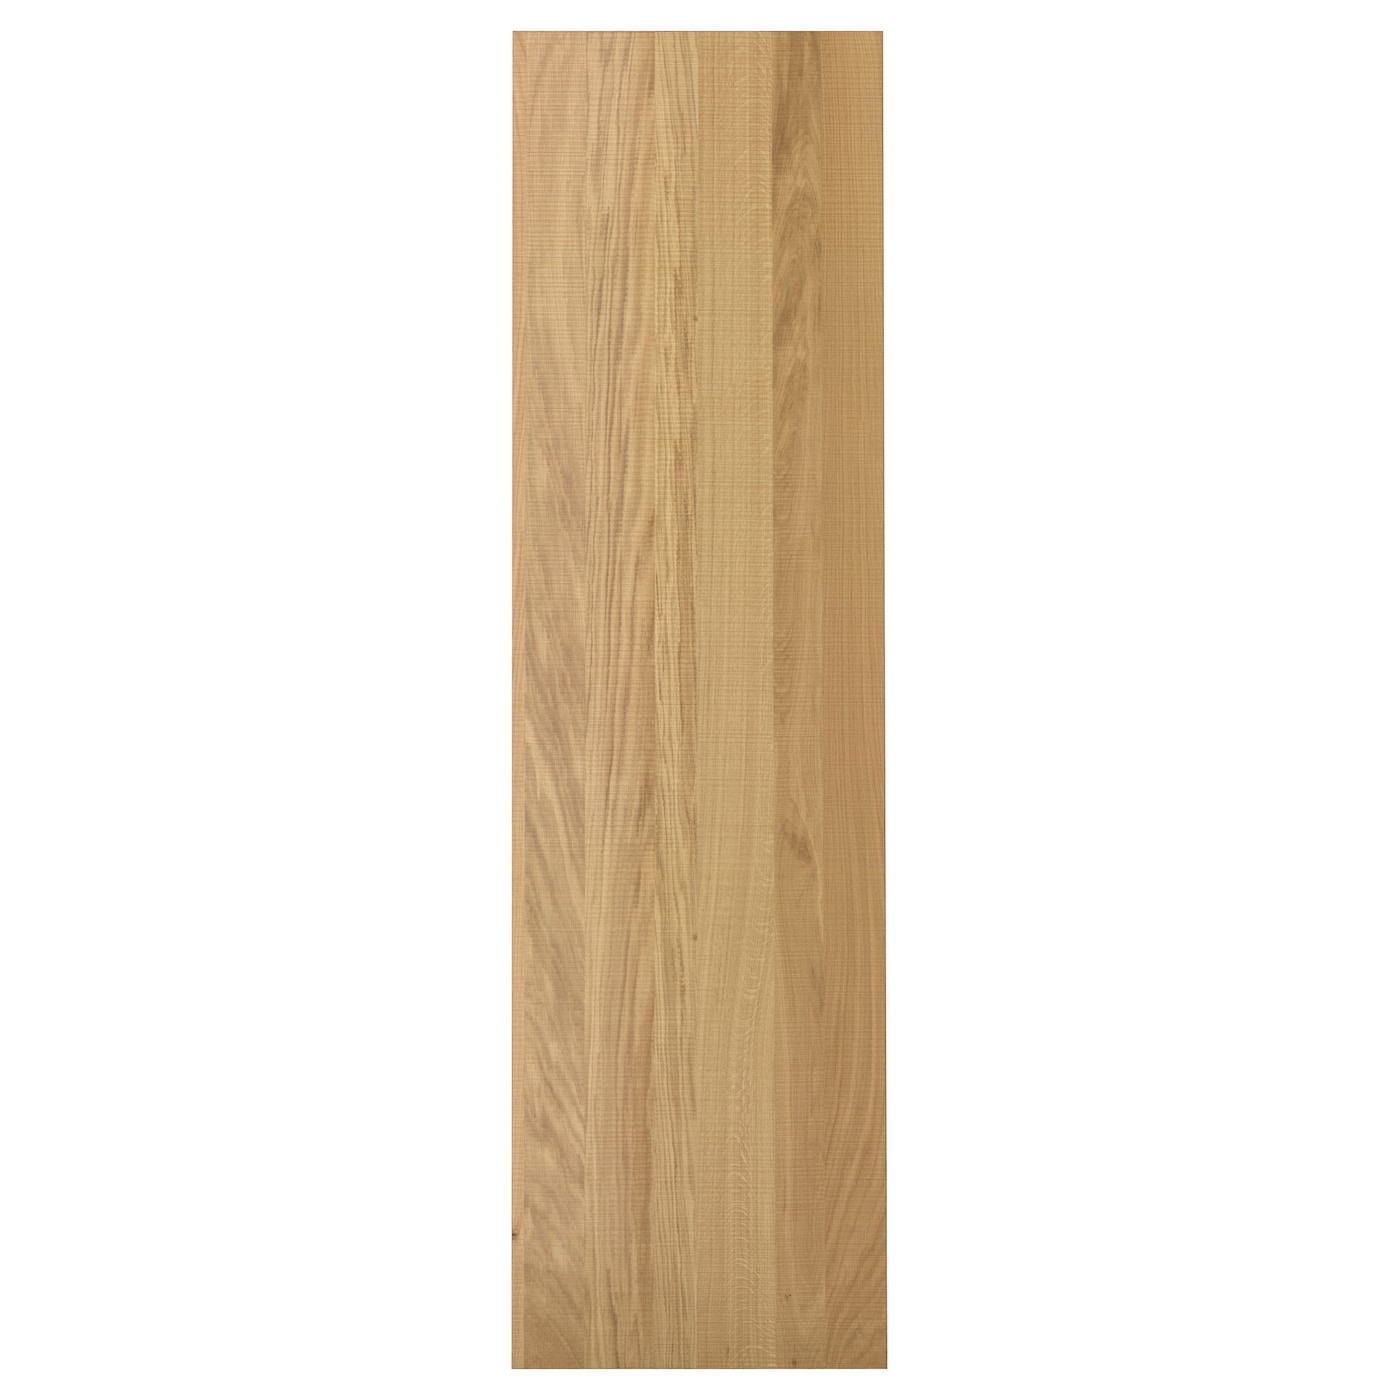 IKEA HYTTAN cover panel Visible variations in the wood grain; gives a warm, natural feeling.